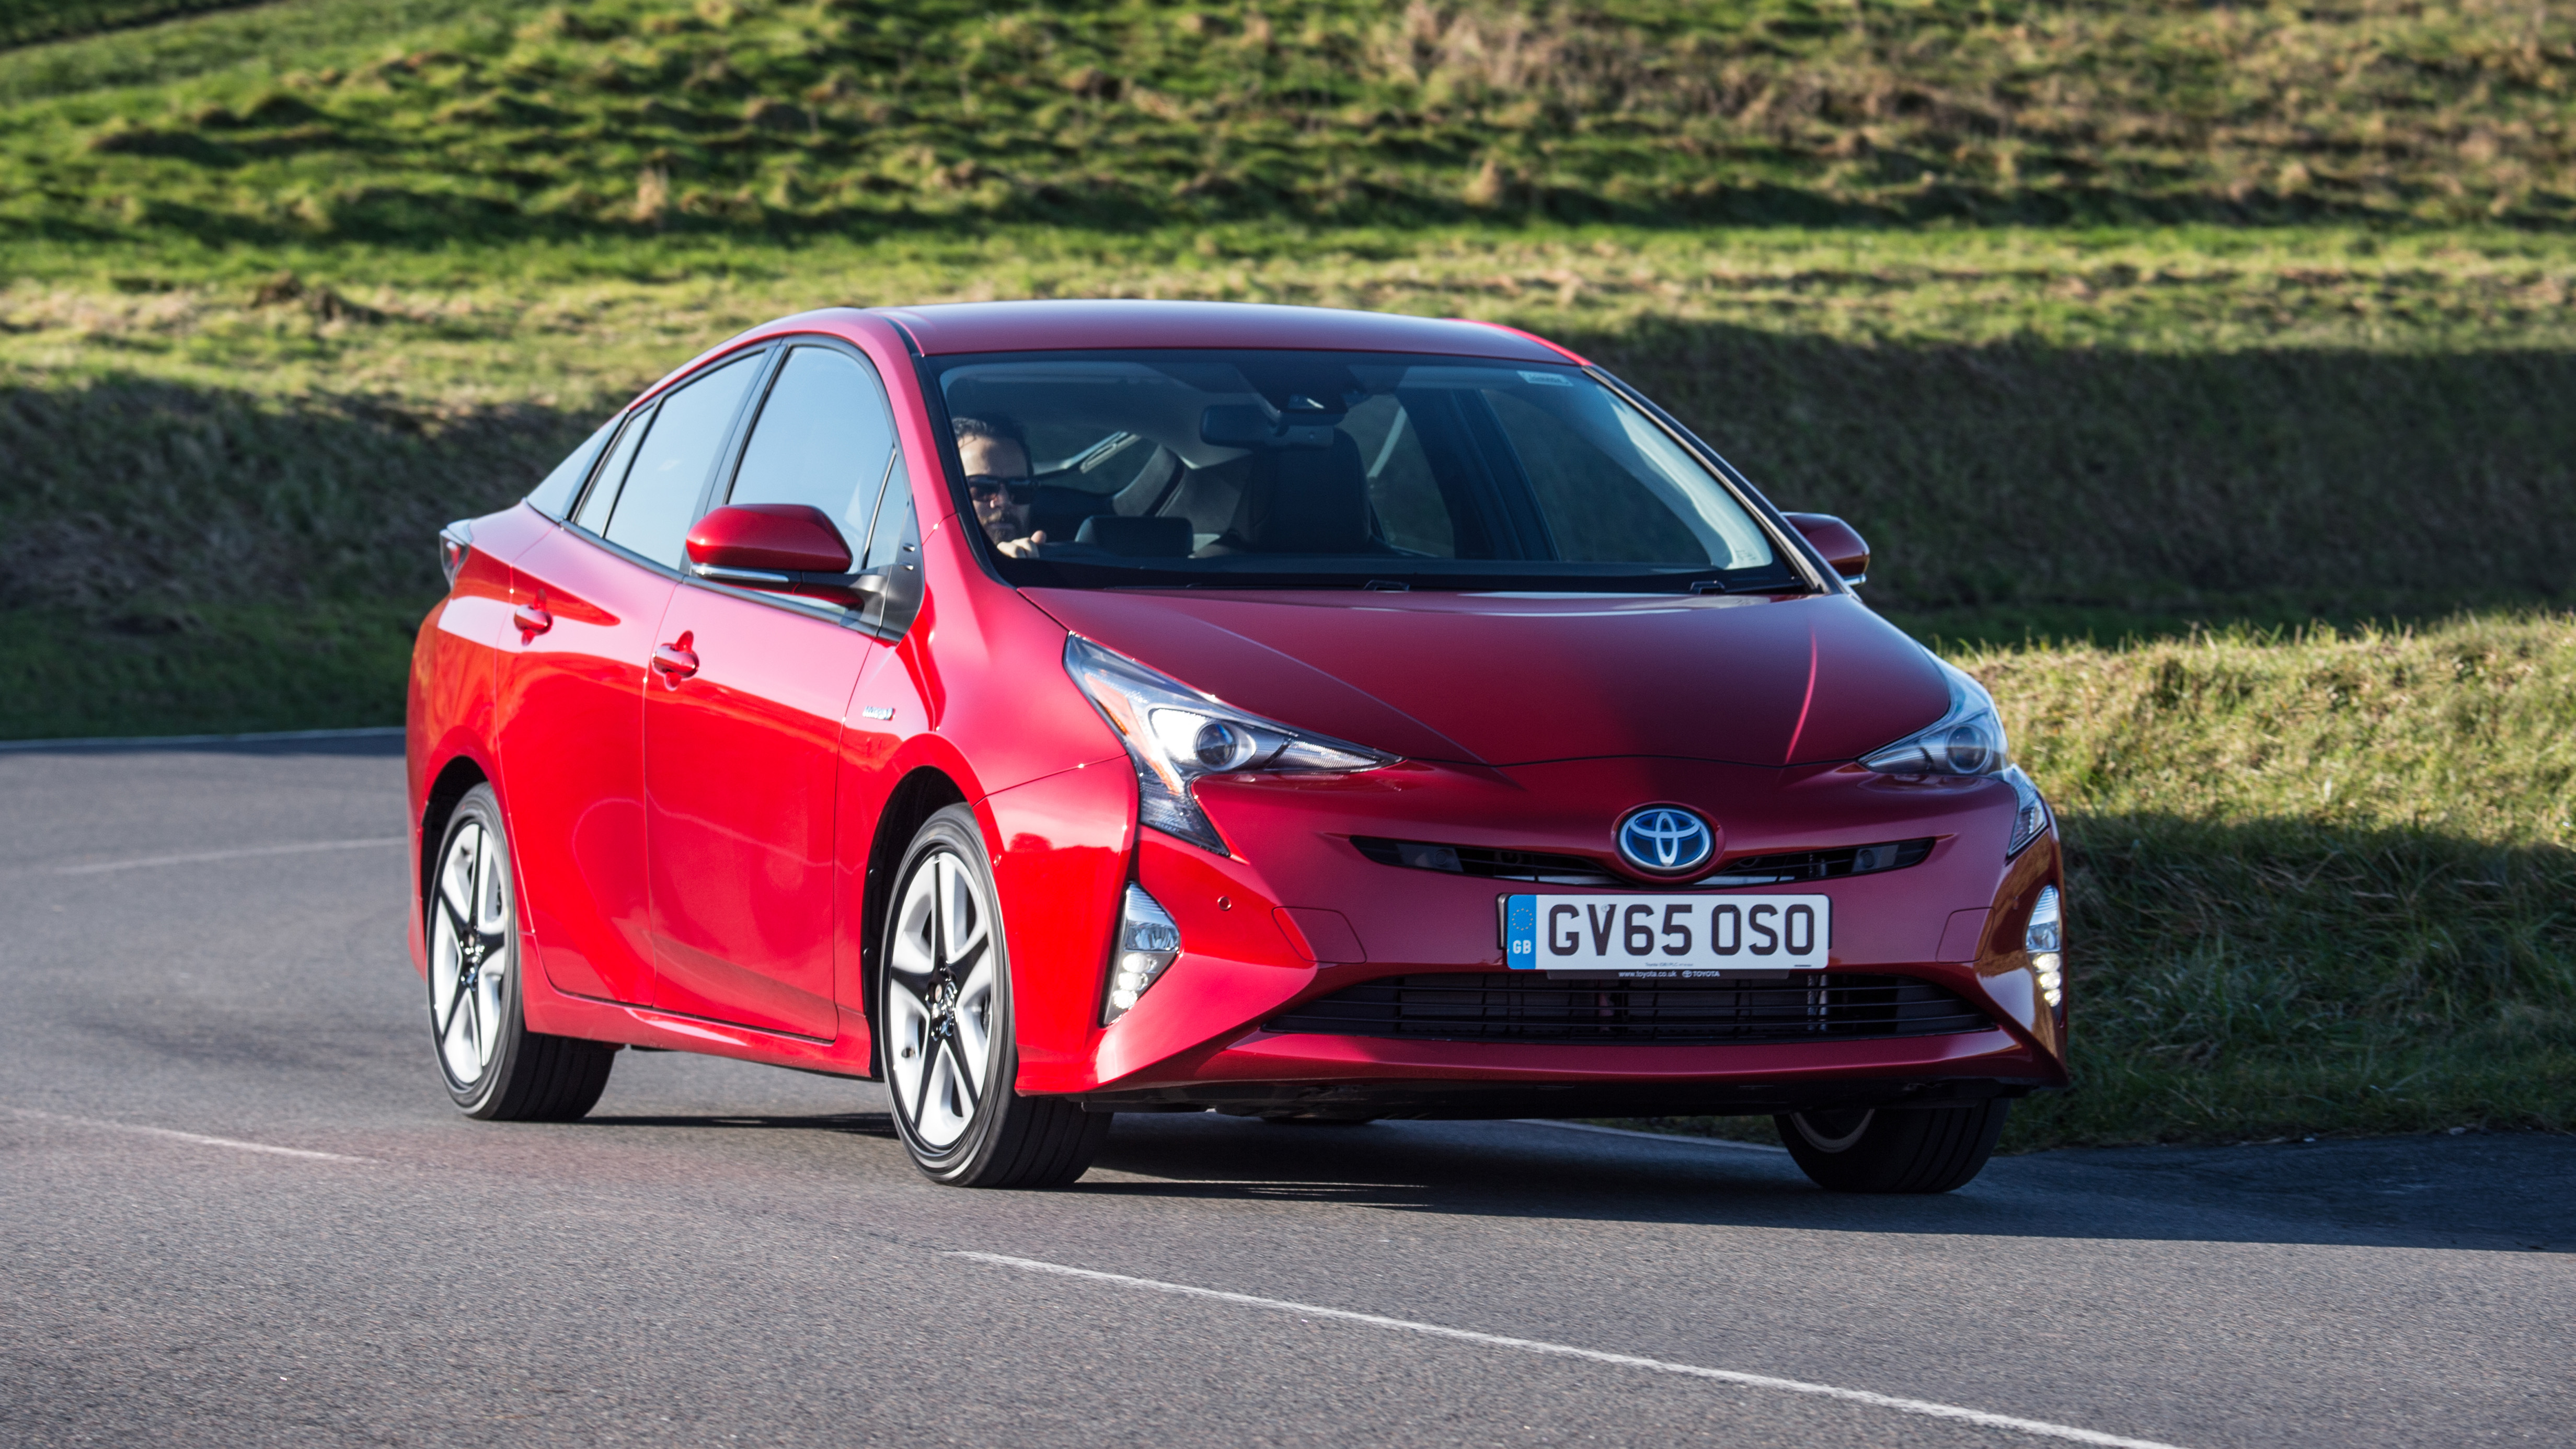 Toyota Prius Review and Buying Guide Best Deals and Prices